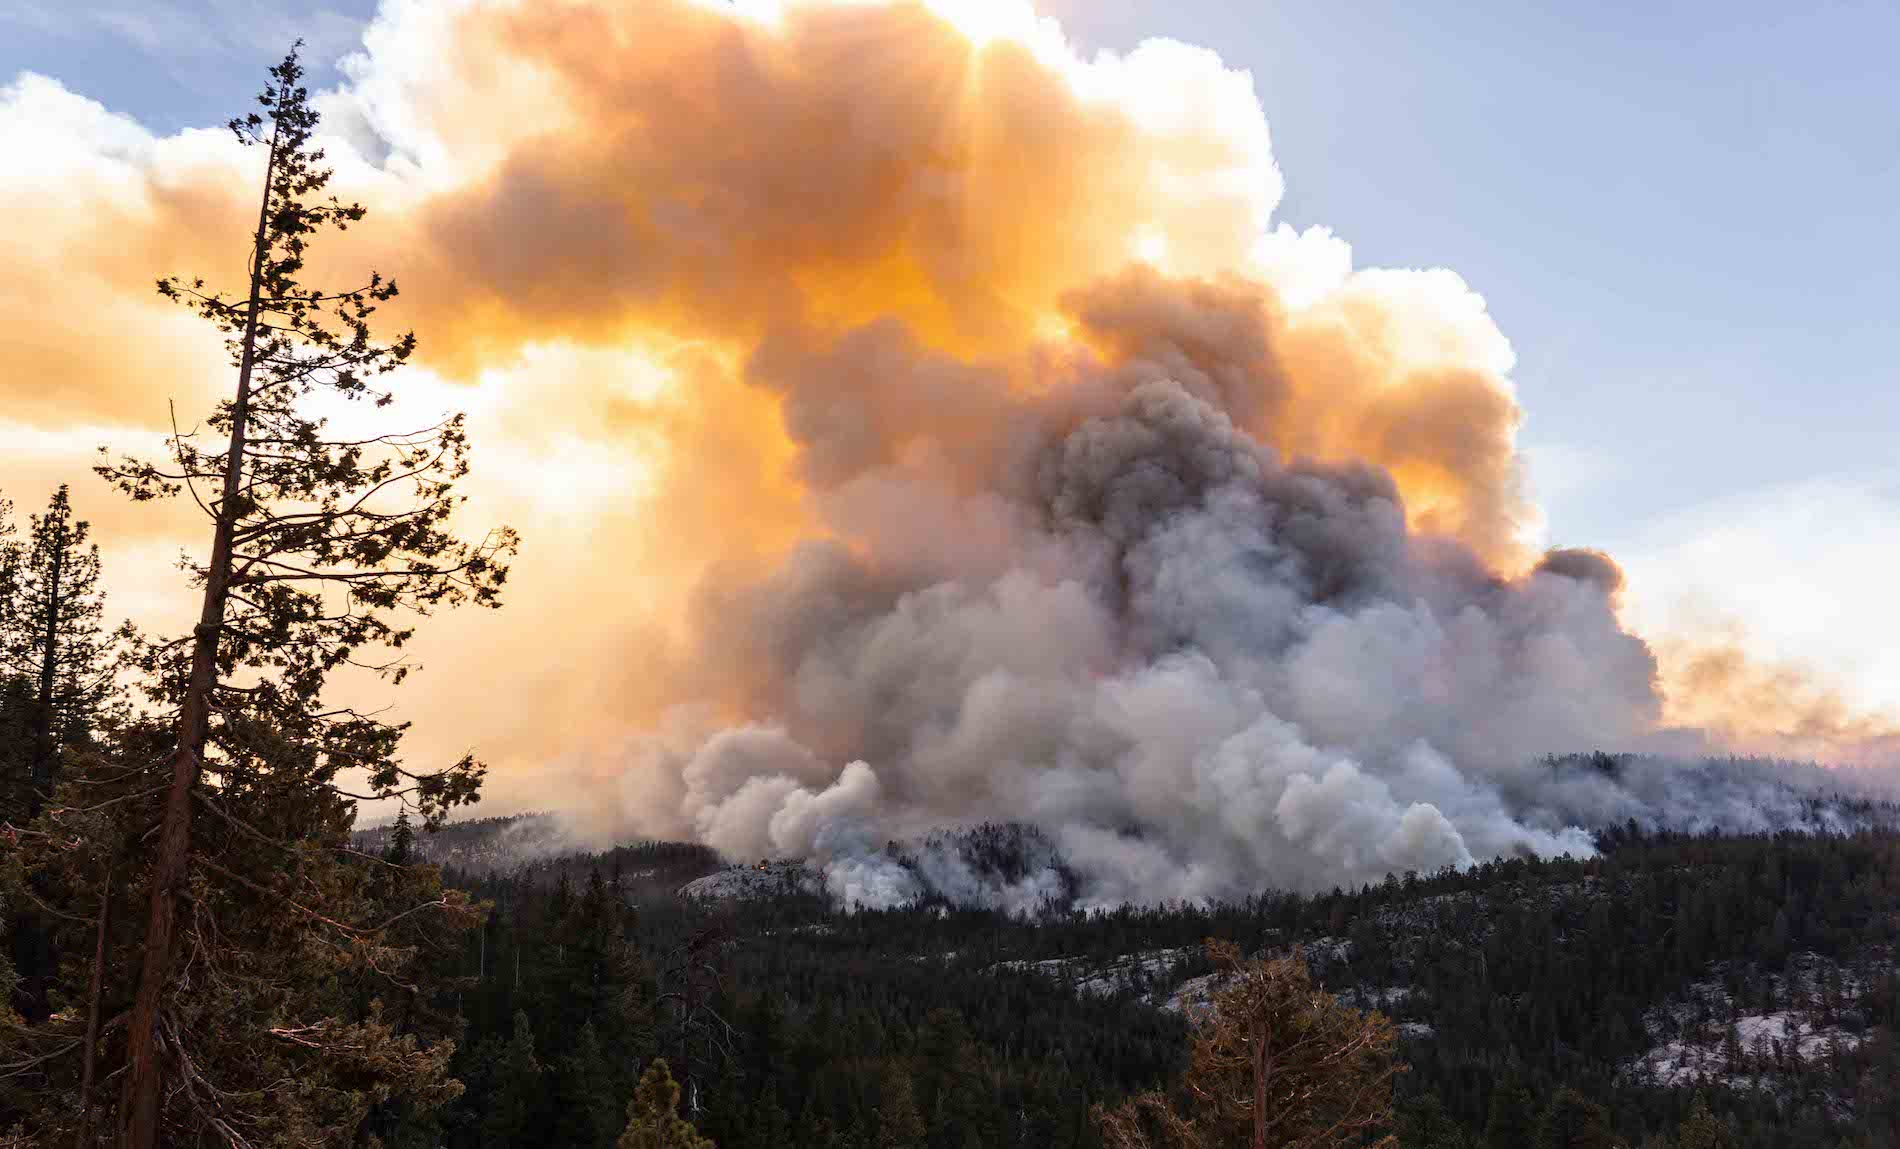 Plumes of smoke from wildfires have caused hazardous smoke conditions in the Yosemite valley.